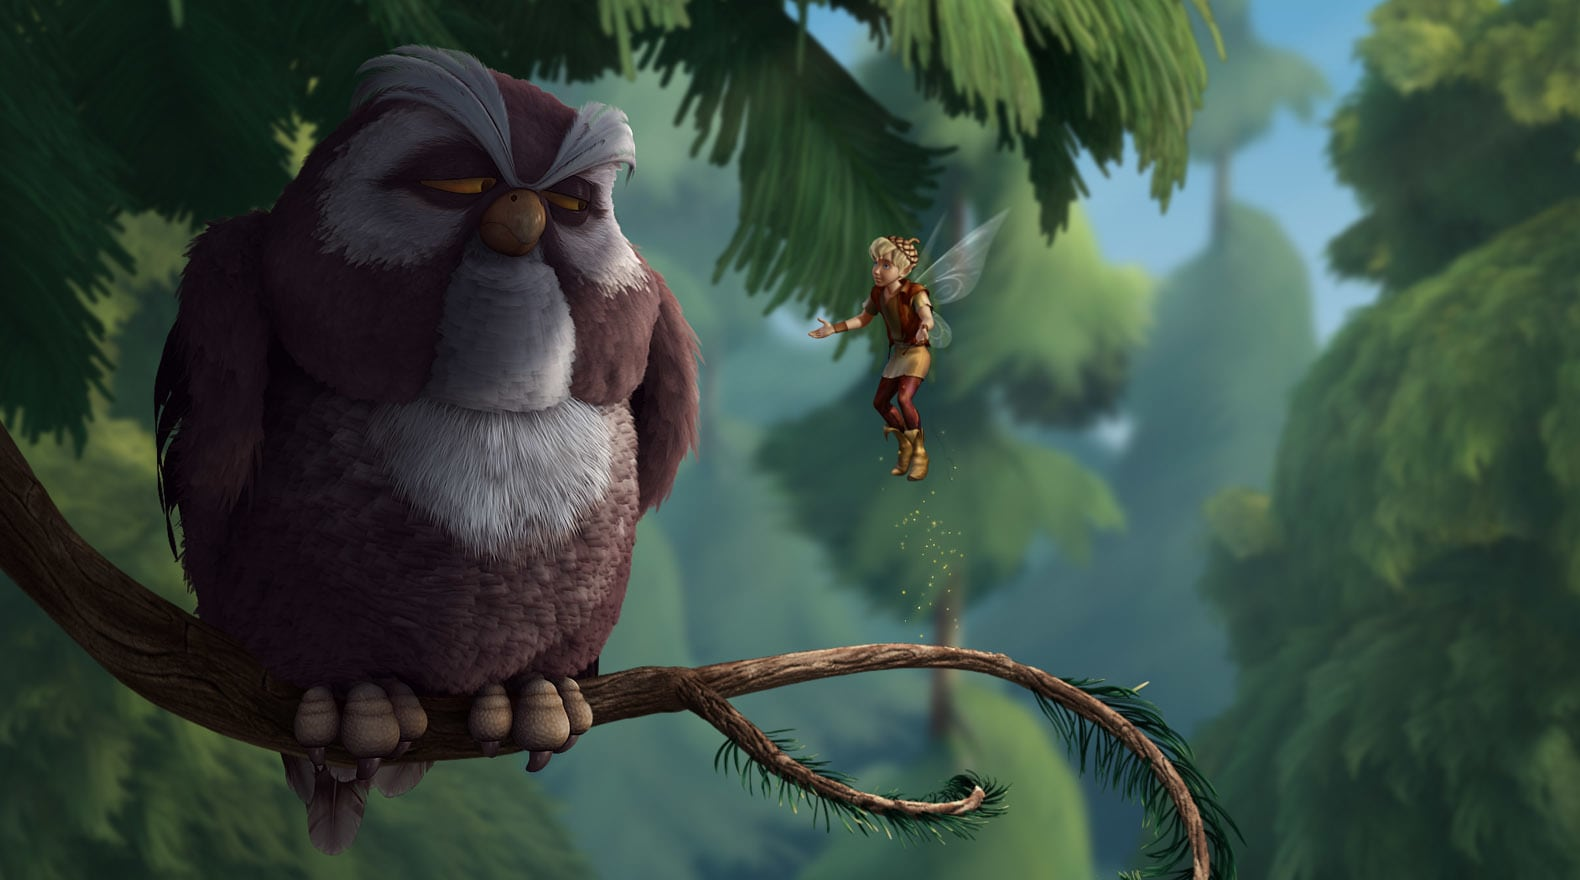 Mr. Owl gives Terence some pretty good advice.